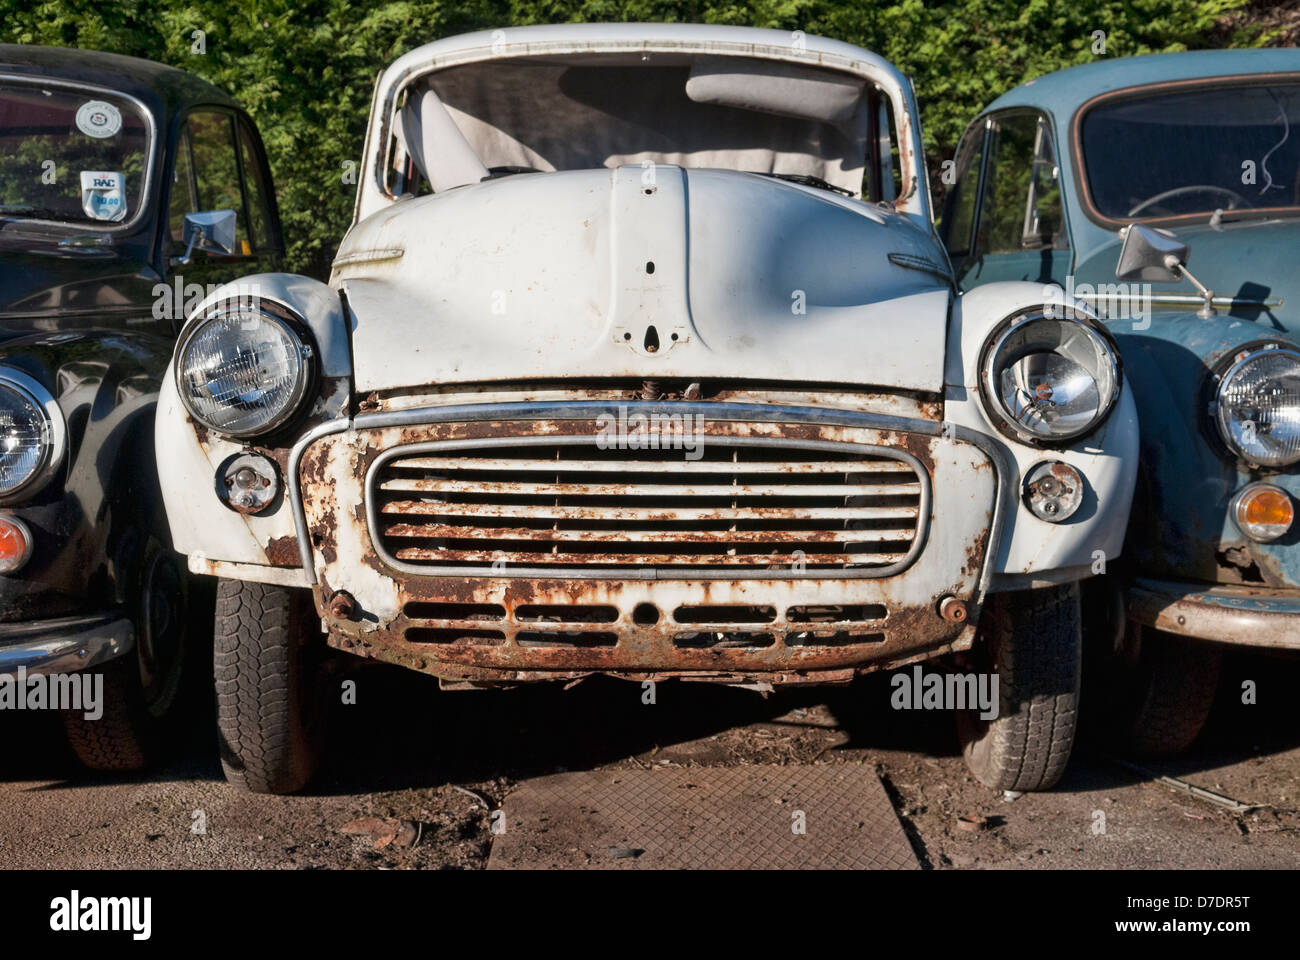 Old Abandoned Morris Minor Car Stock Photos & Old Abandoned Morris ...